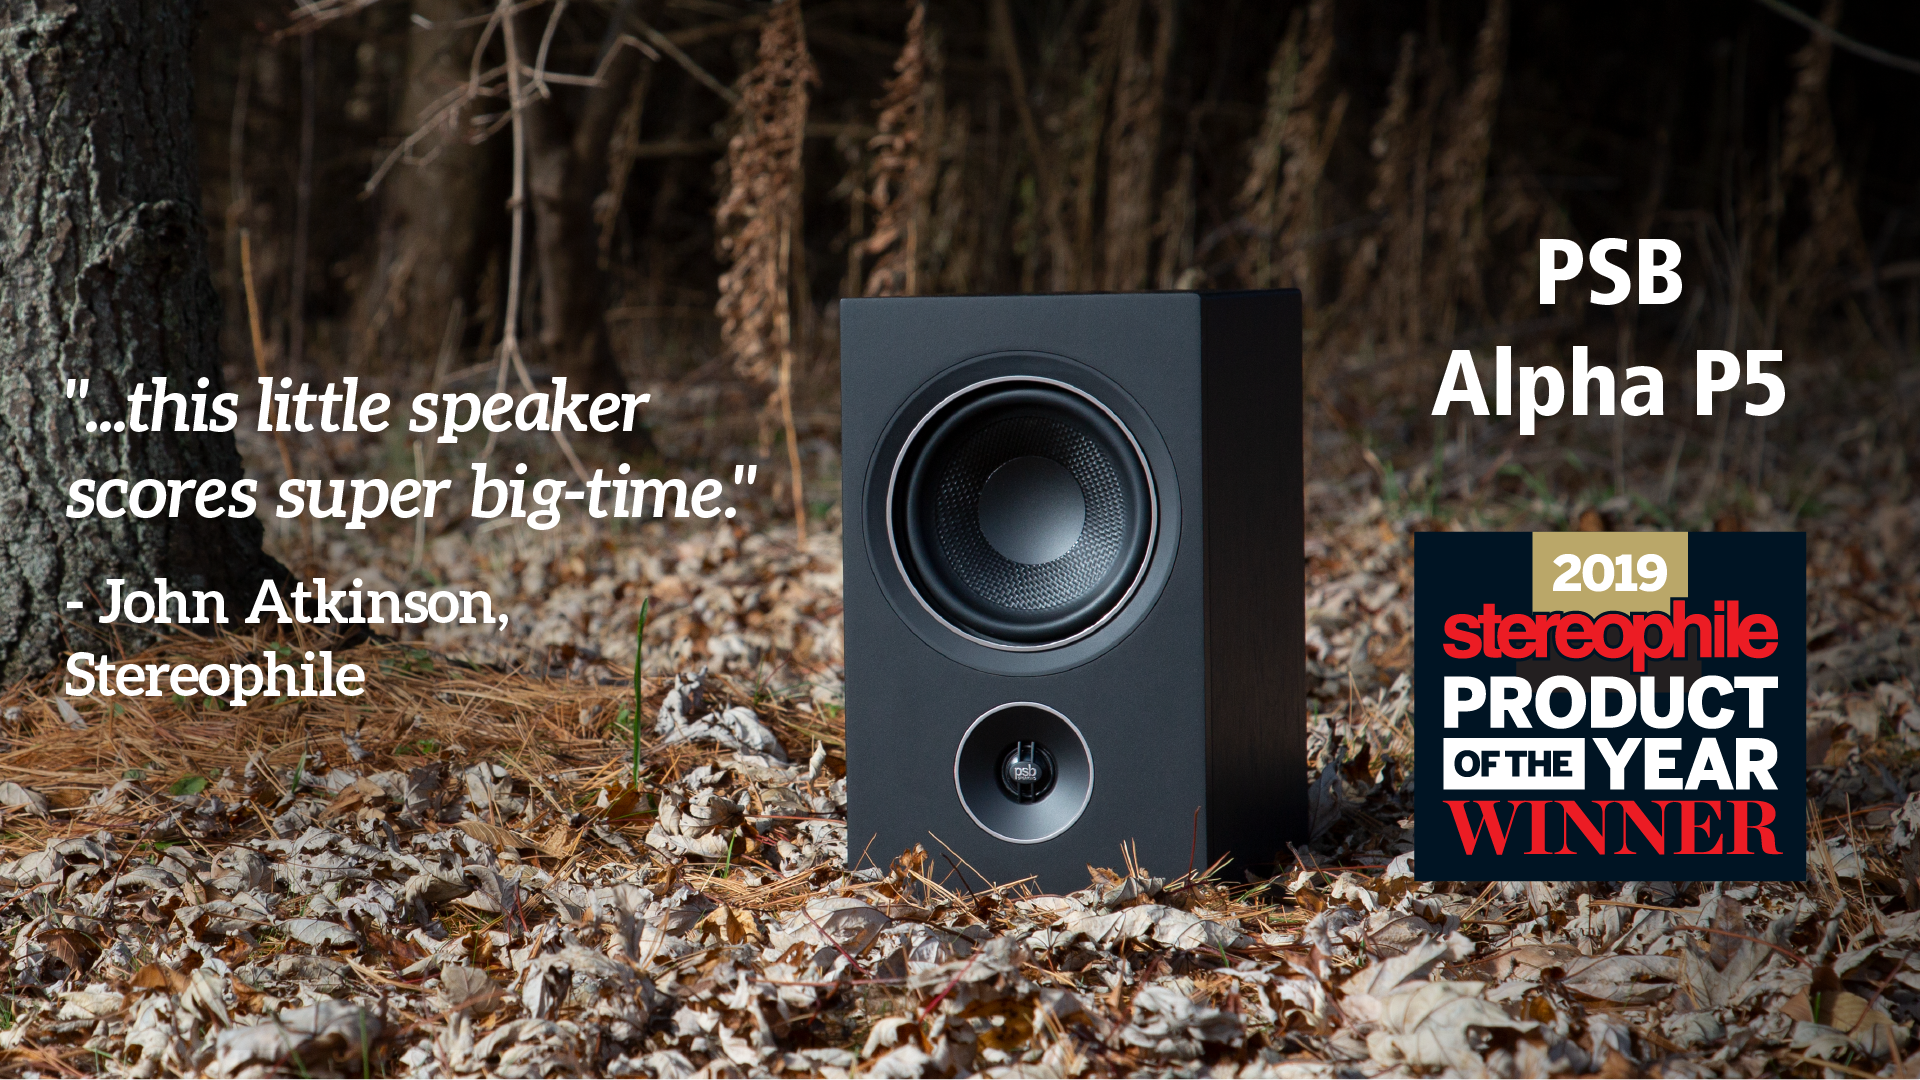 PSB Alpha P5 Wins Product of the Year Award from Stereophile